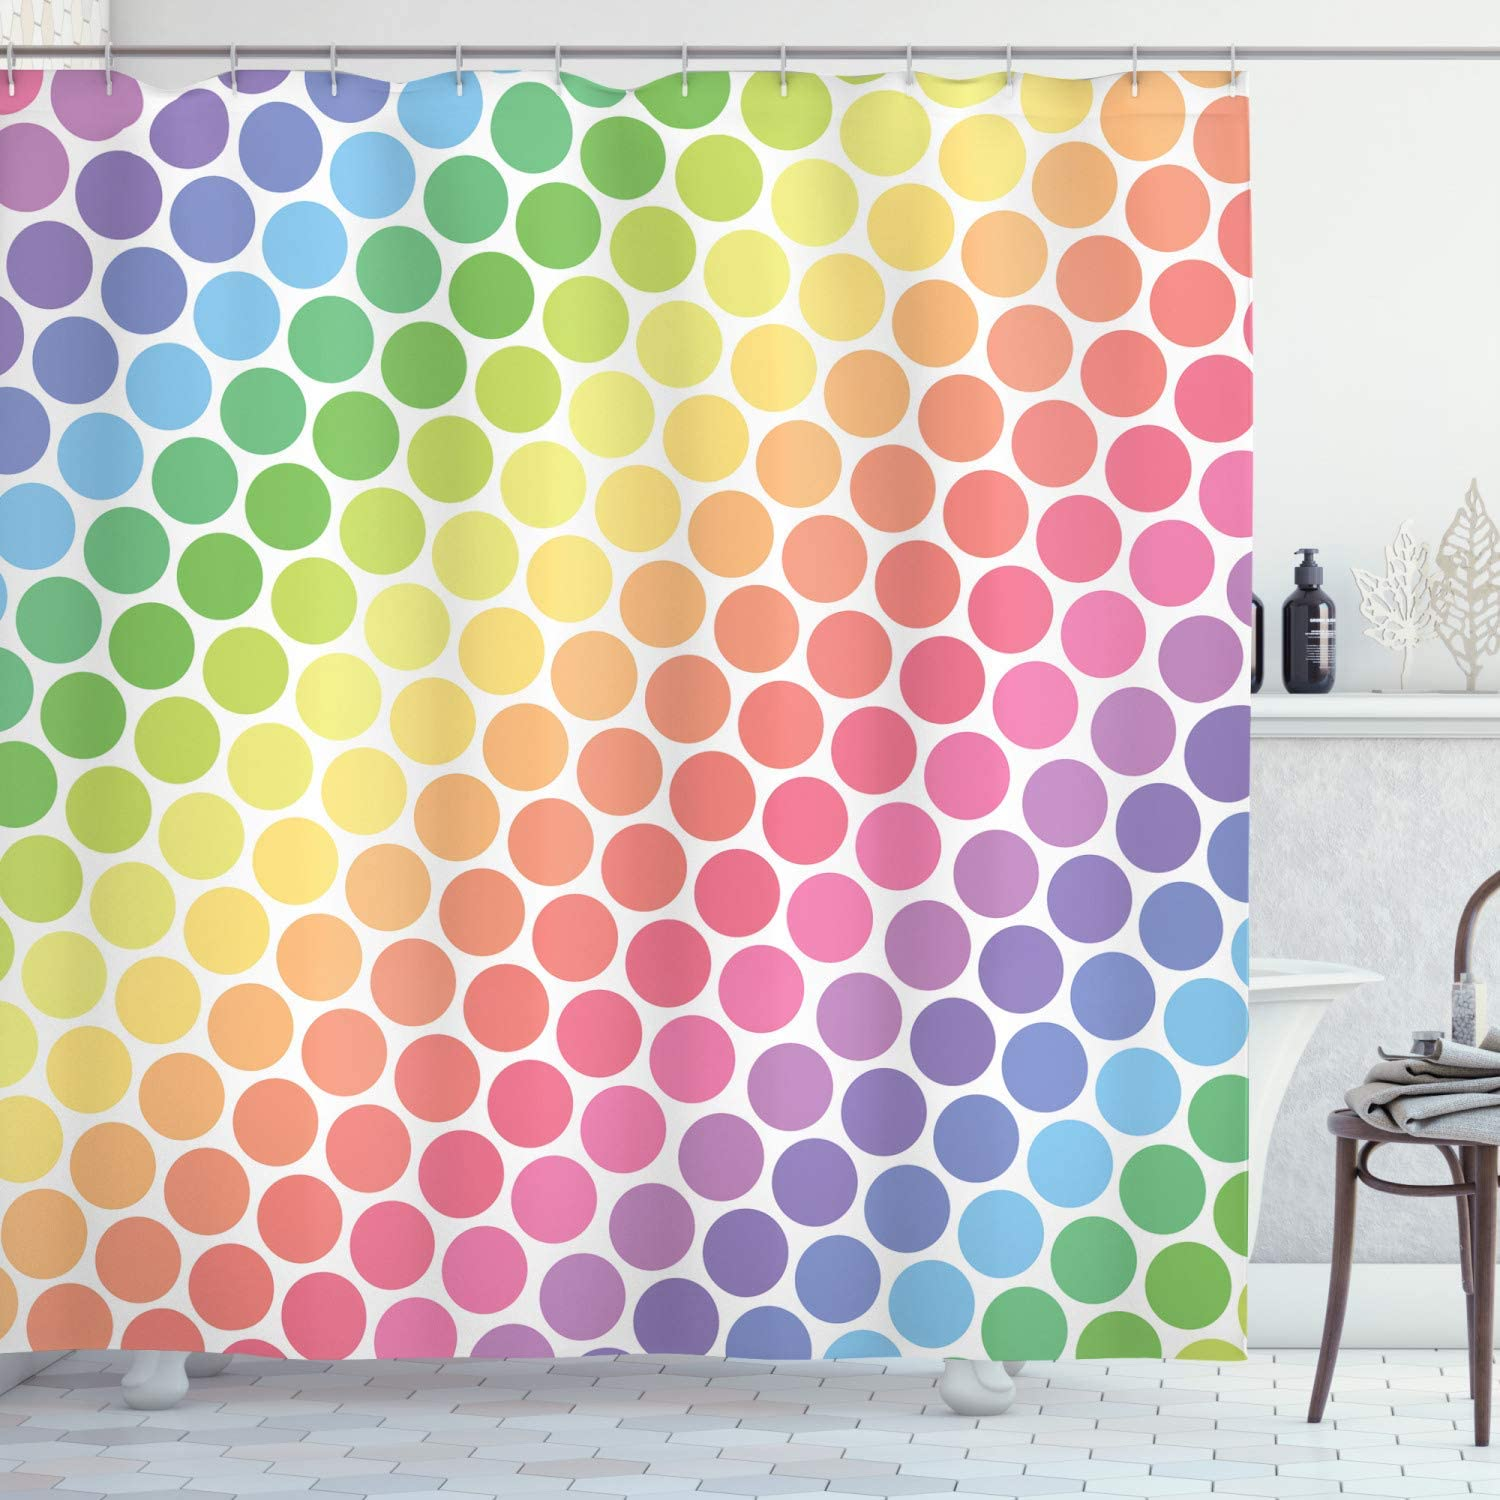 Ambesonne Polka Dots Home Decor Shower Curtain Set, Polka Dots in Soft Rainbow Colors Big Points Eternal Shapes Retro Artful Pattern, Bathroom Accessories, 69W X 70L Inches, Multi